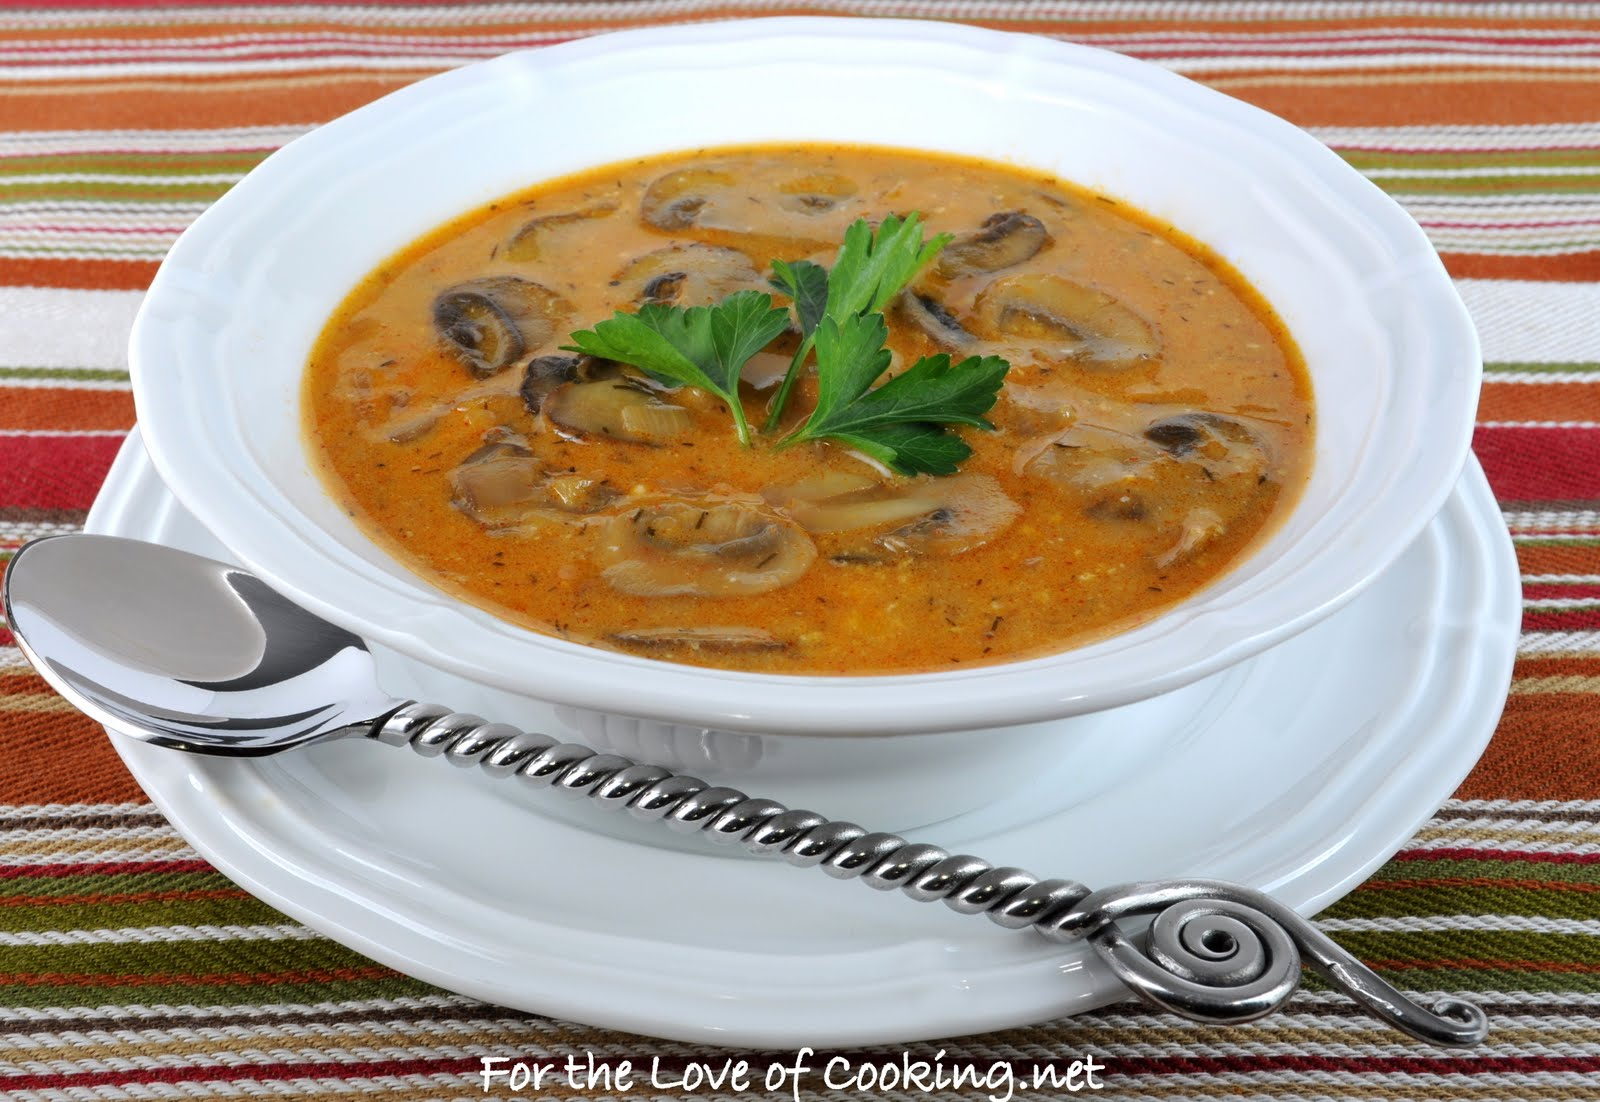 For the Love of Cooking » Hungarian Mushroom Soup